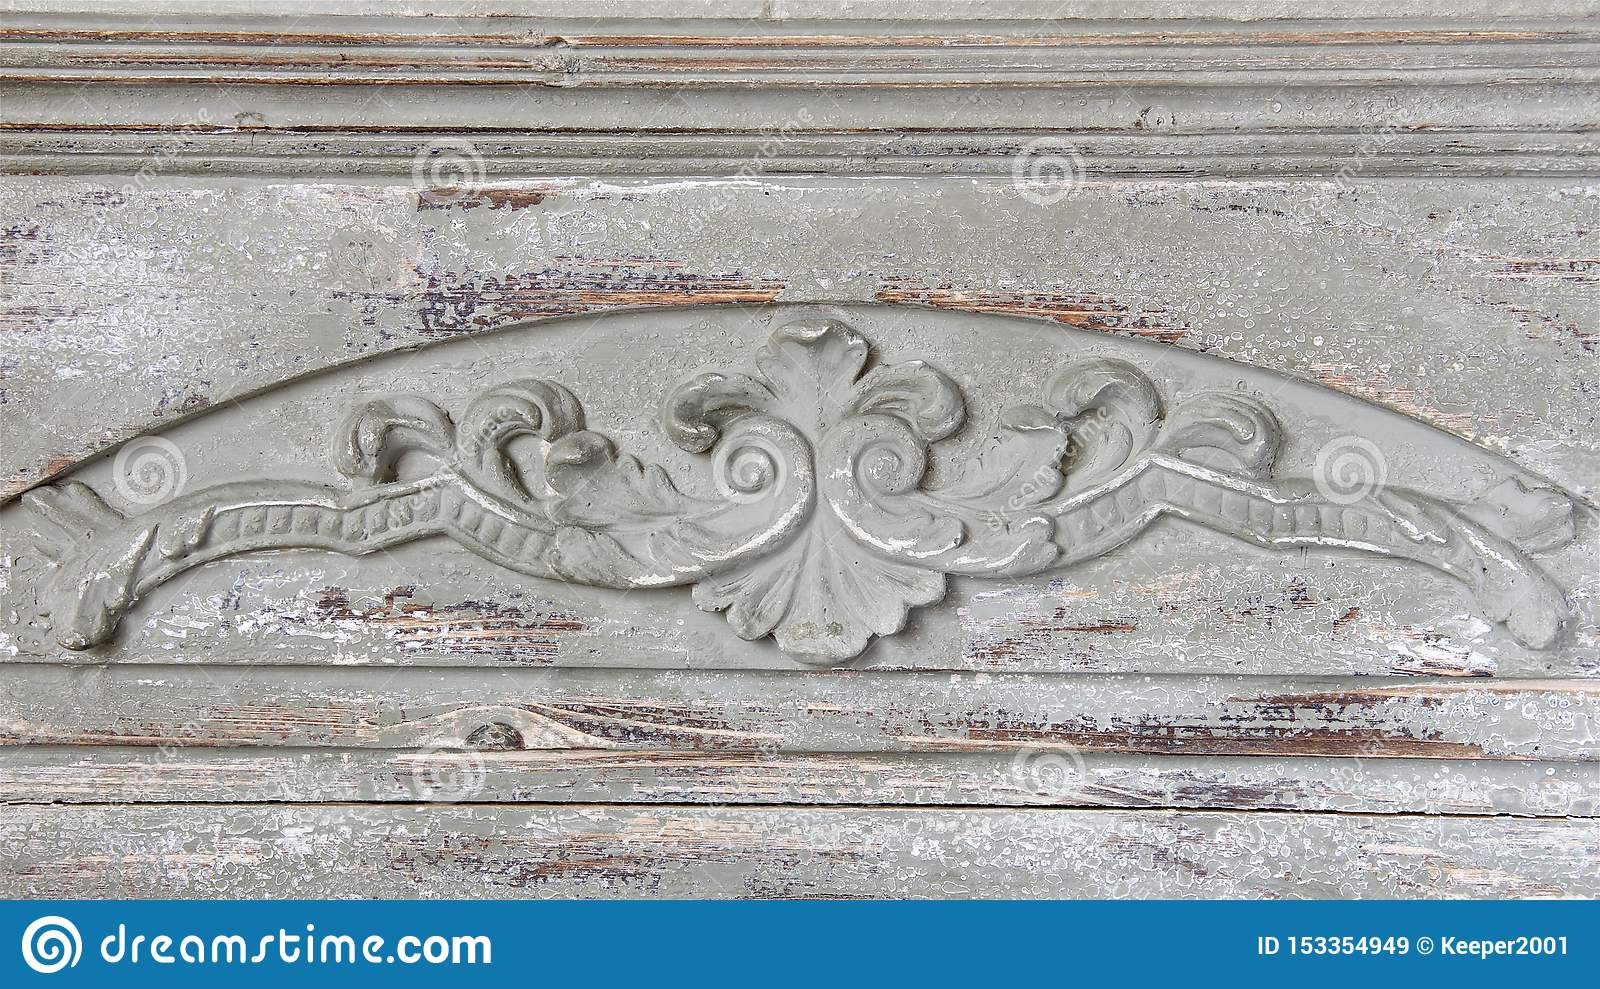 Decor, wood carving of light texture